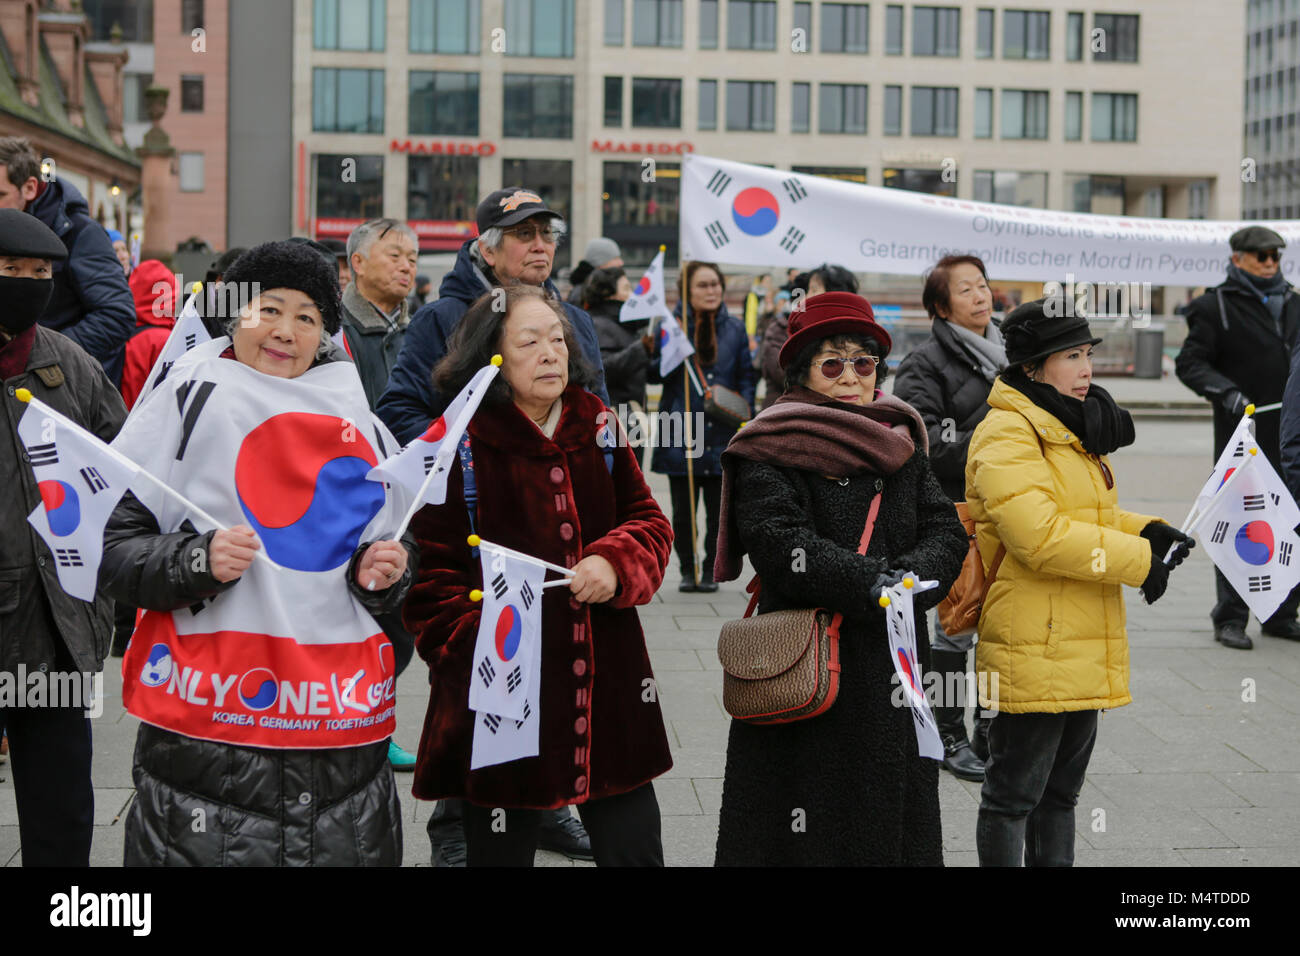 Frankfurt, Germany. 17th Feb, 2018. People are pictured at the rally, holding South Korean flags. South Koreans Stock Photo